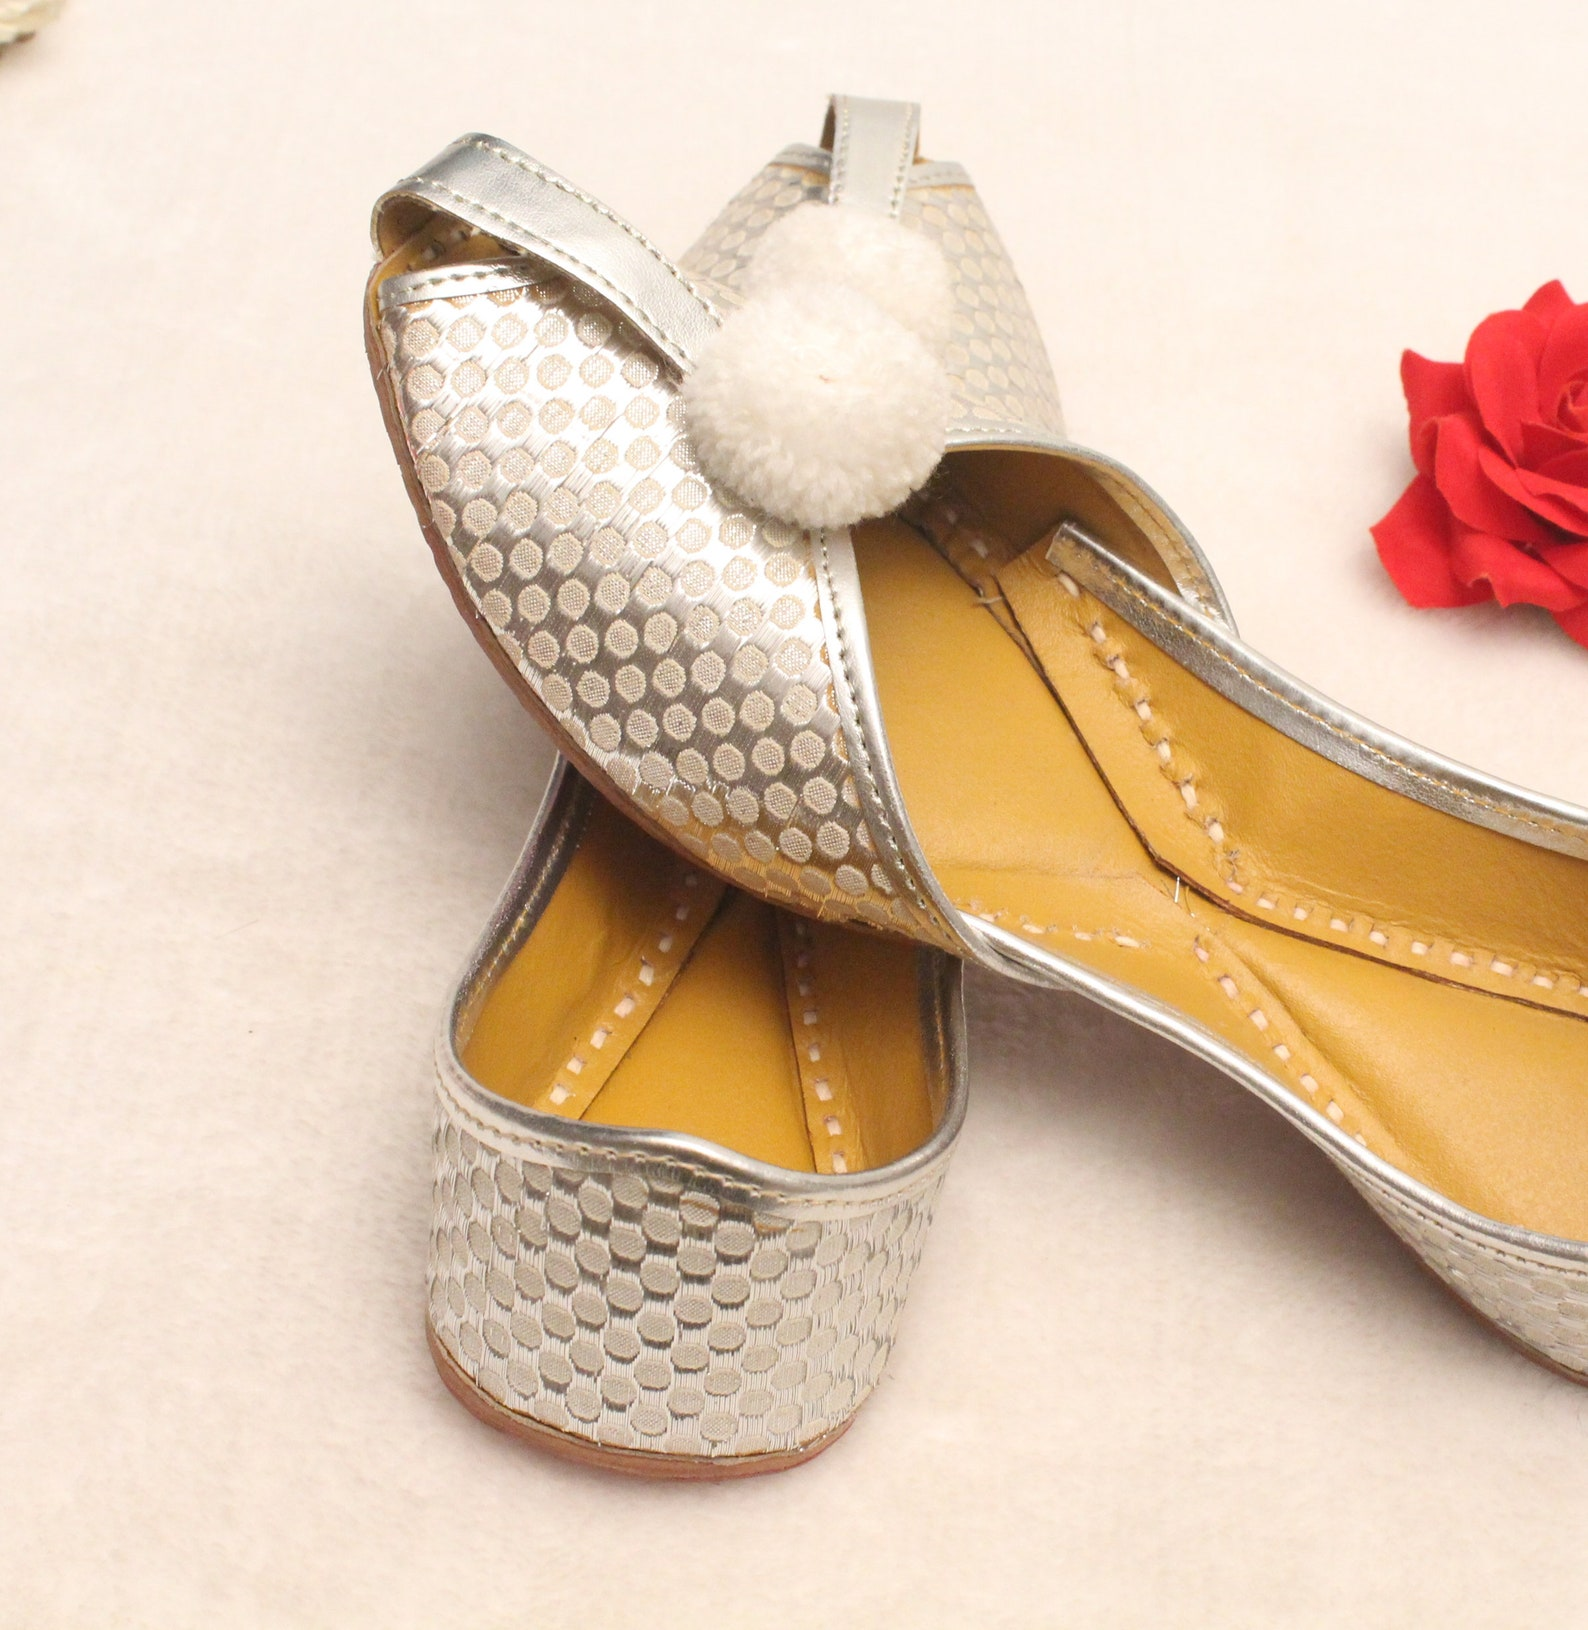 women bridal shoes/indian silver jutti shoes/silver wedding flats/silver laddu ballet flats/jasmine shoes/khussa shoes us size 5